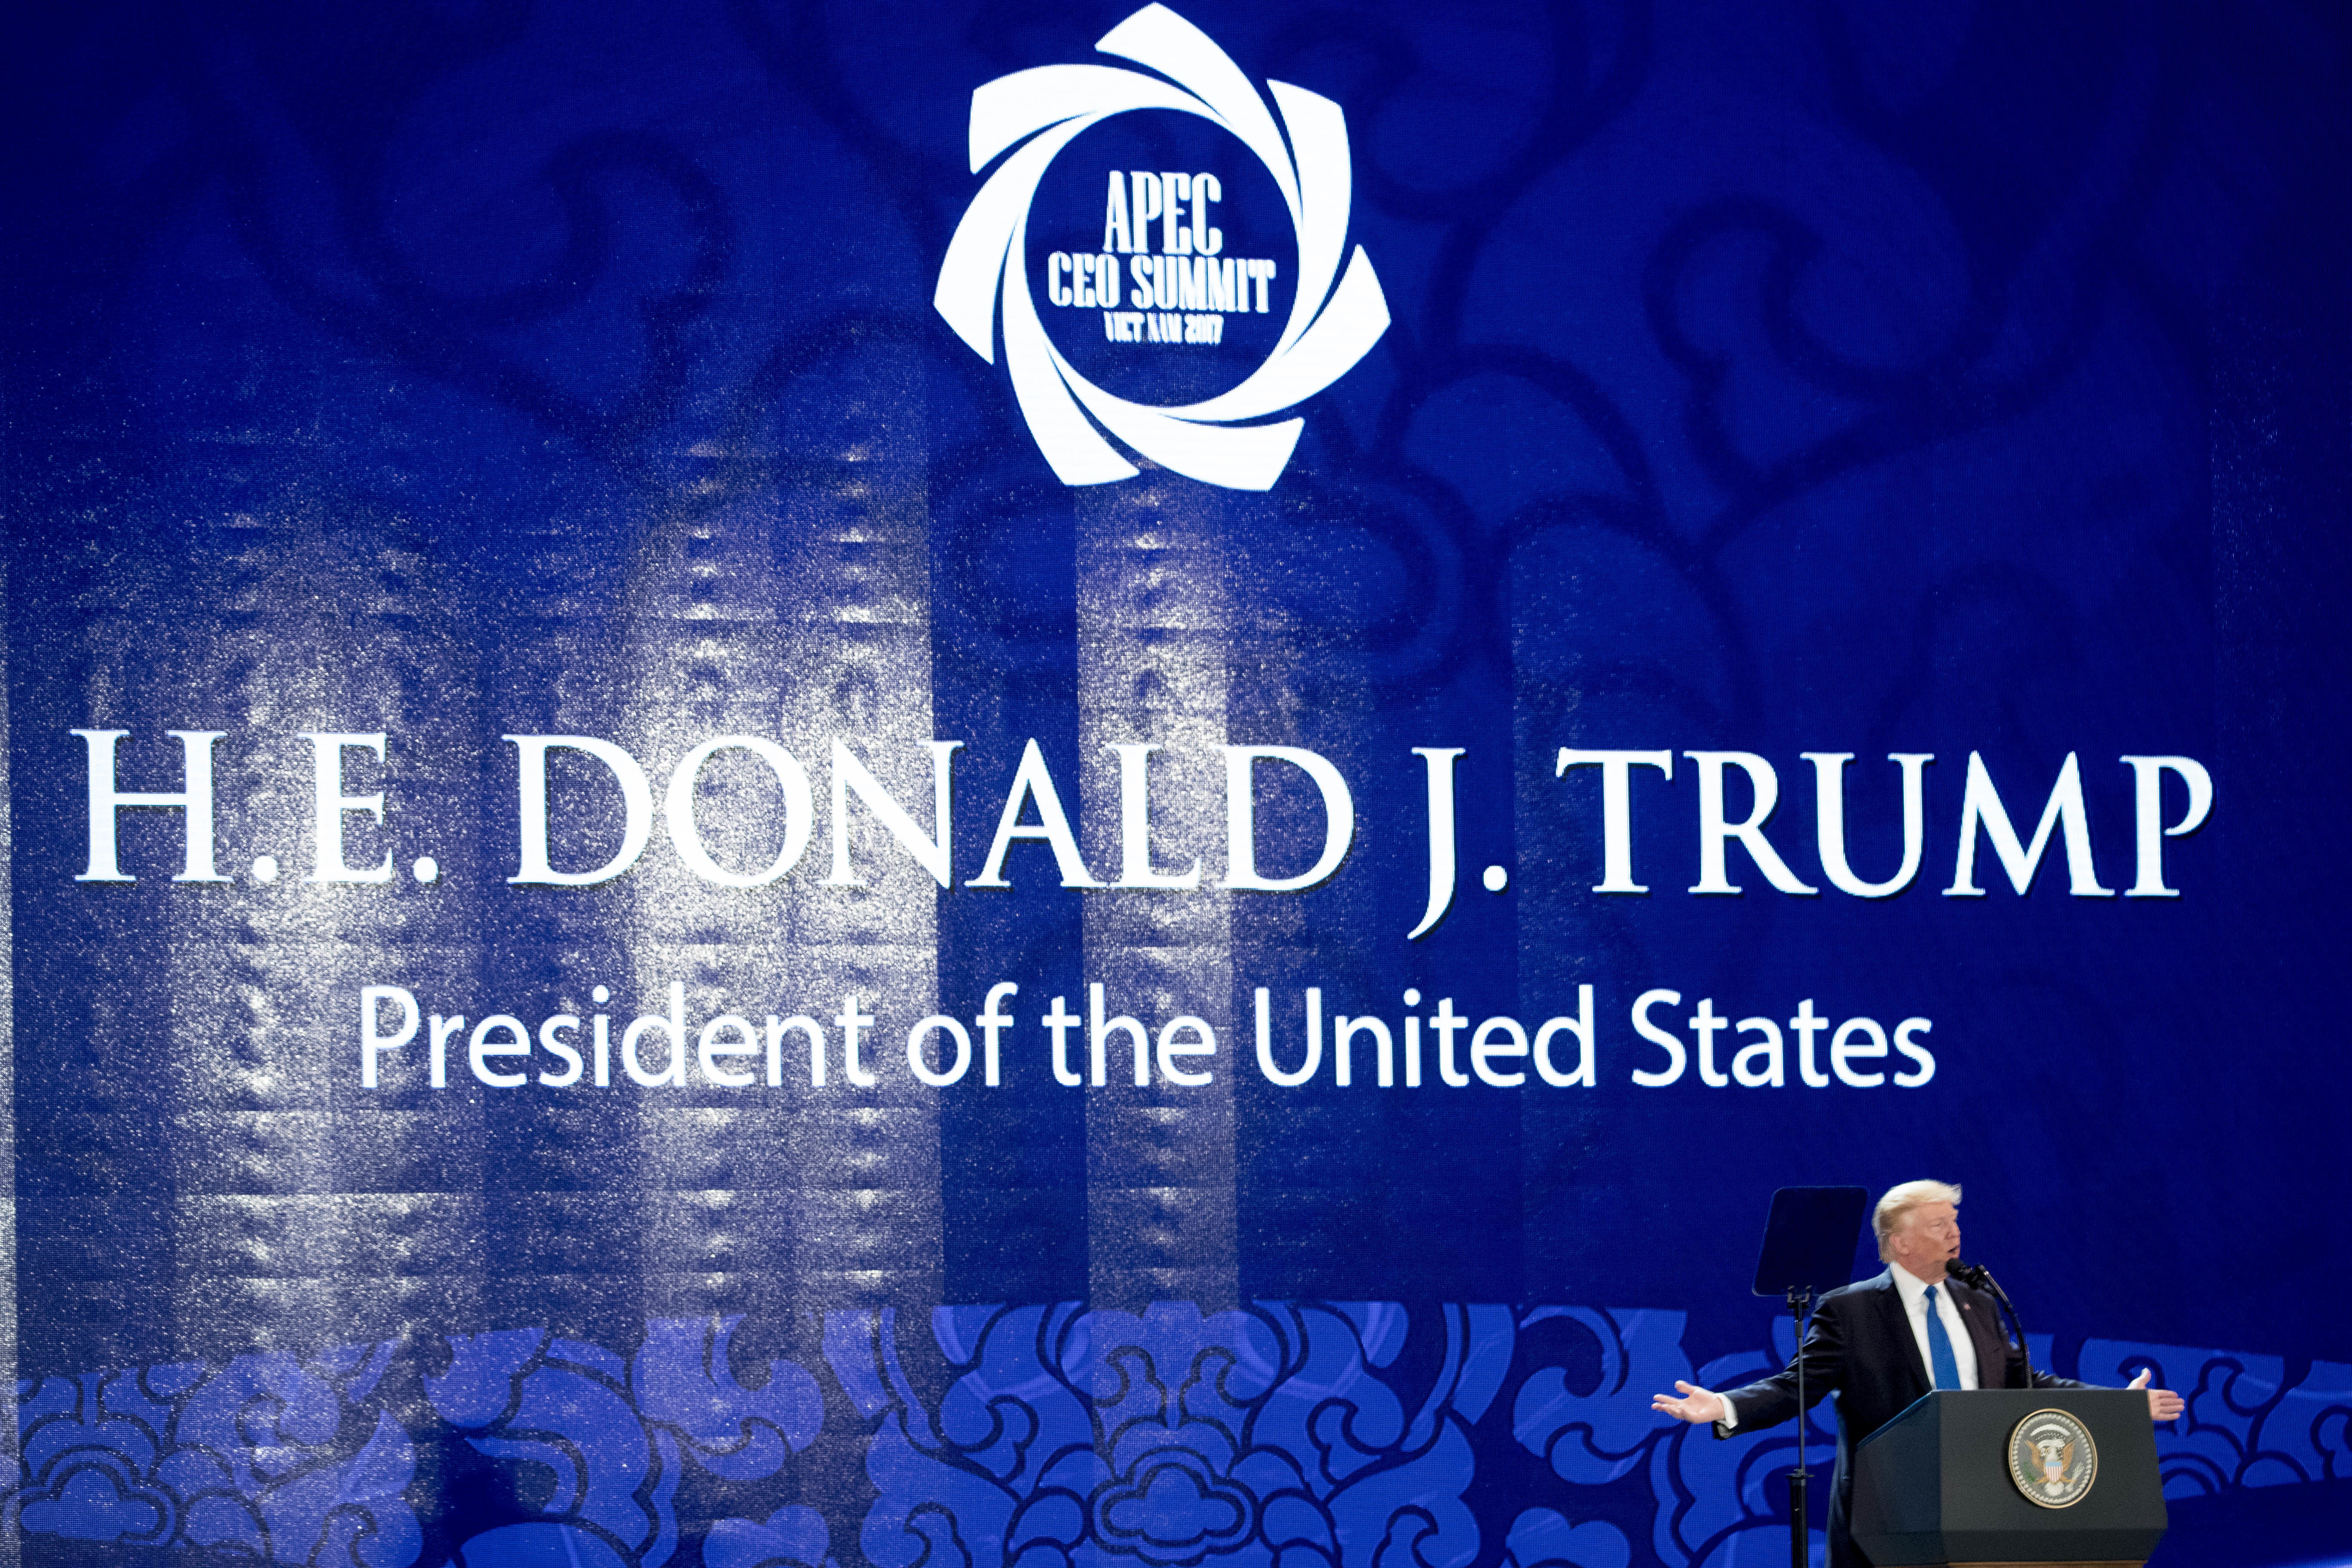 U.S. President Donald Trump speaks at the Asia-Pacific Economic Cooperation (APEC) CEO Summit at the Aryana Convention Center, Friday, Nov. 10, 2017, in Danang, Vietnam. Trump is on a five country trip through Asia traveling to Japan, South Korea, China, Vietnam and the Philippines. (AP Photo/Andrew Harnik)